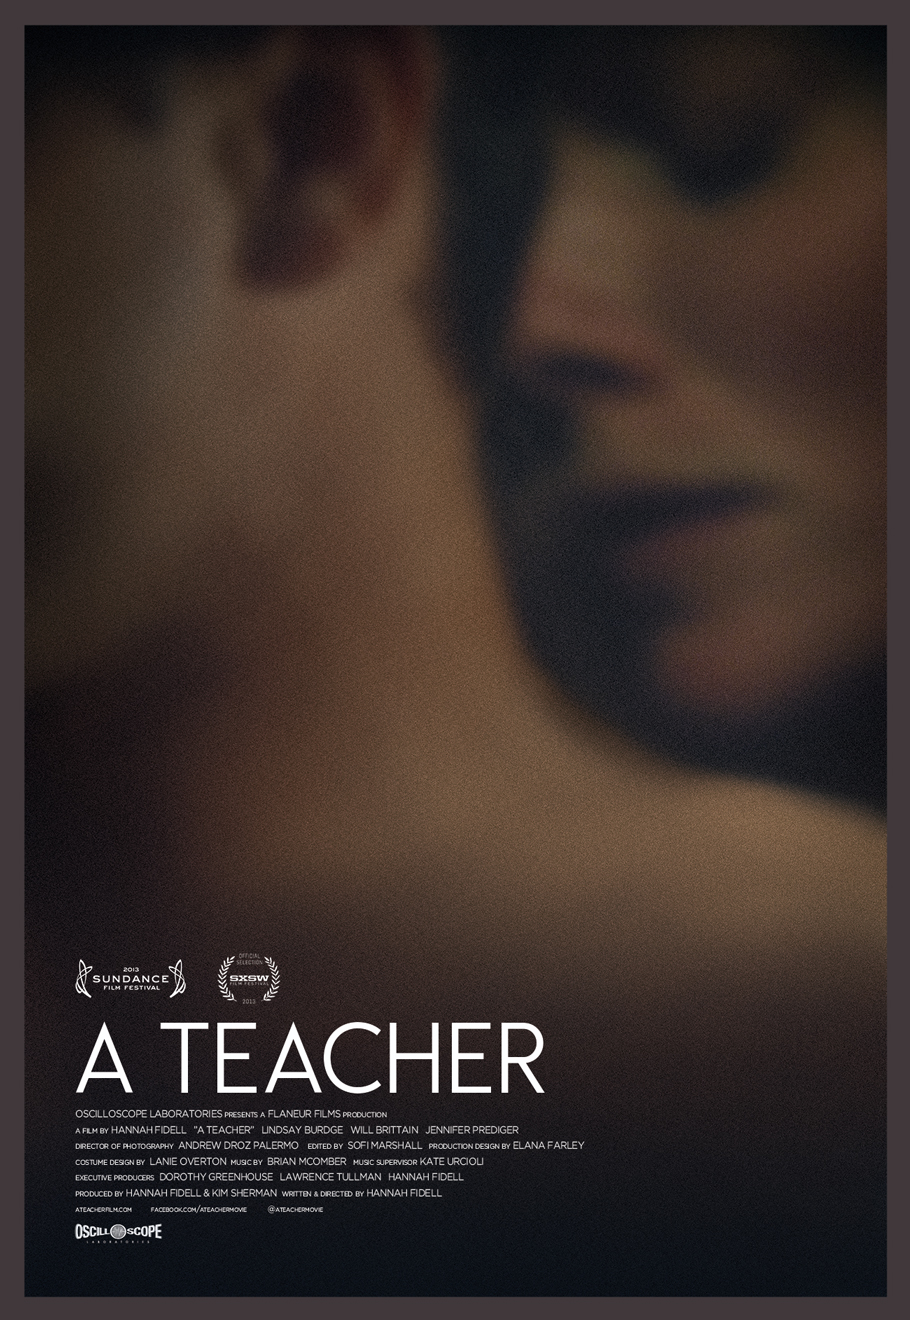 A Teacher